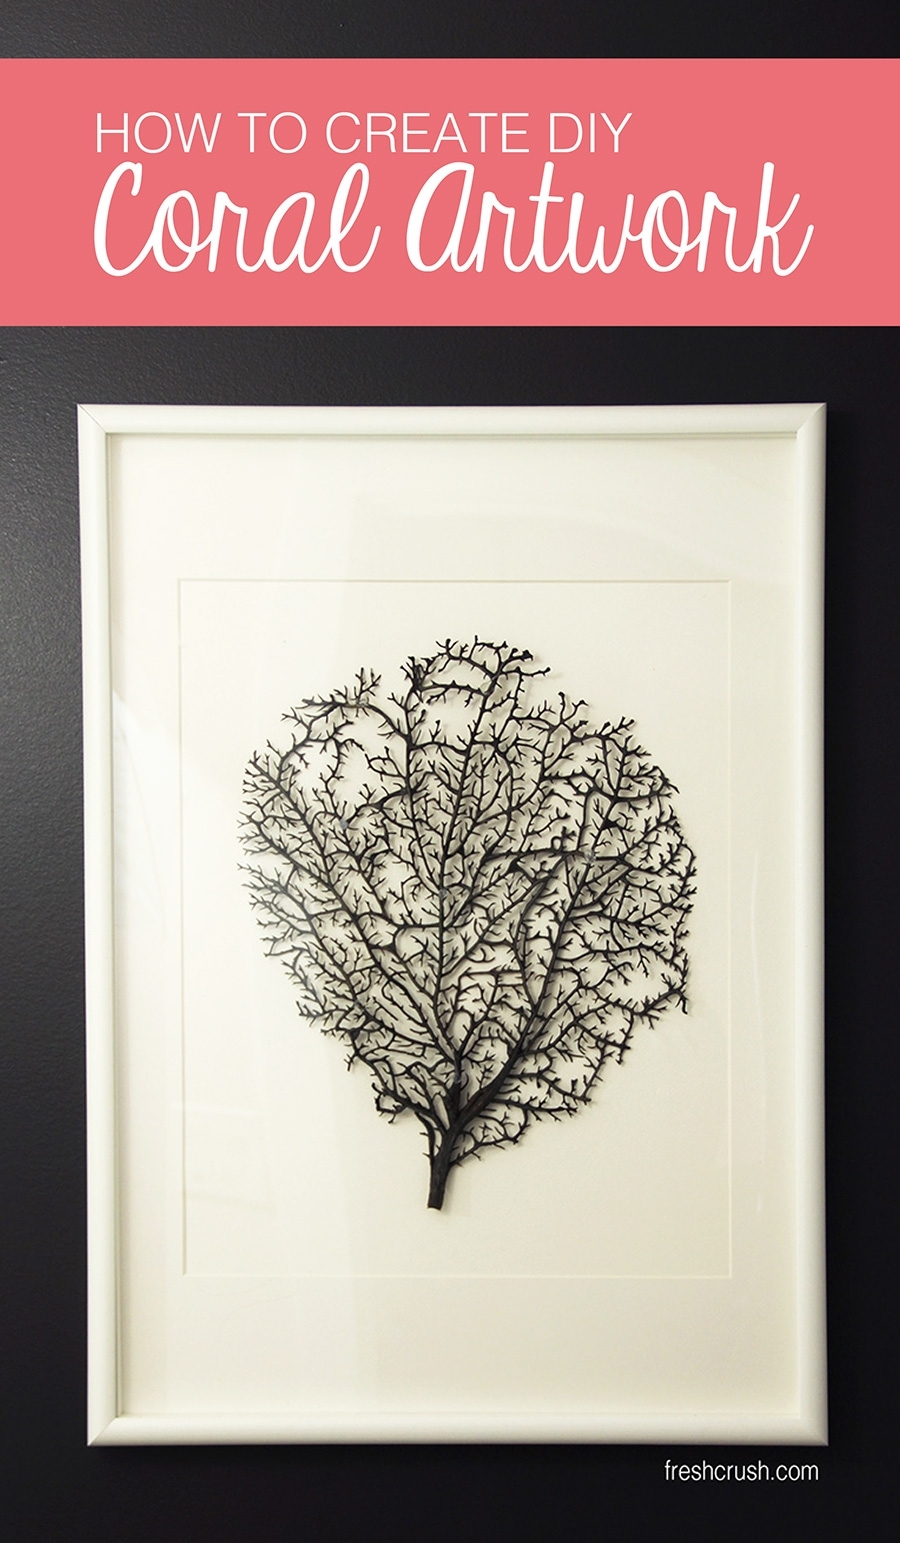 Diy Coral Artwork – One Room Challenge – Week 4 – Fresh Crush Throughout Latest Framed Coral Art Prints (Gallery 11 of 15)